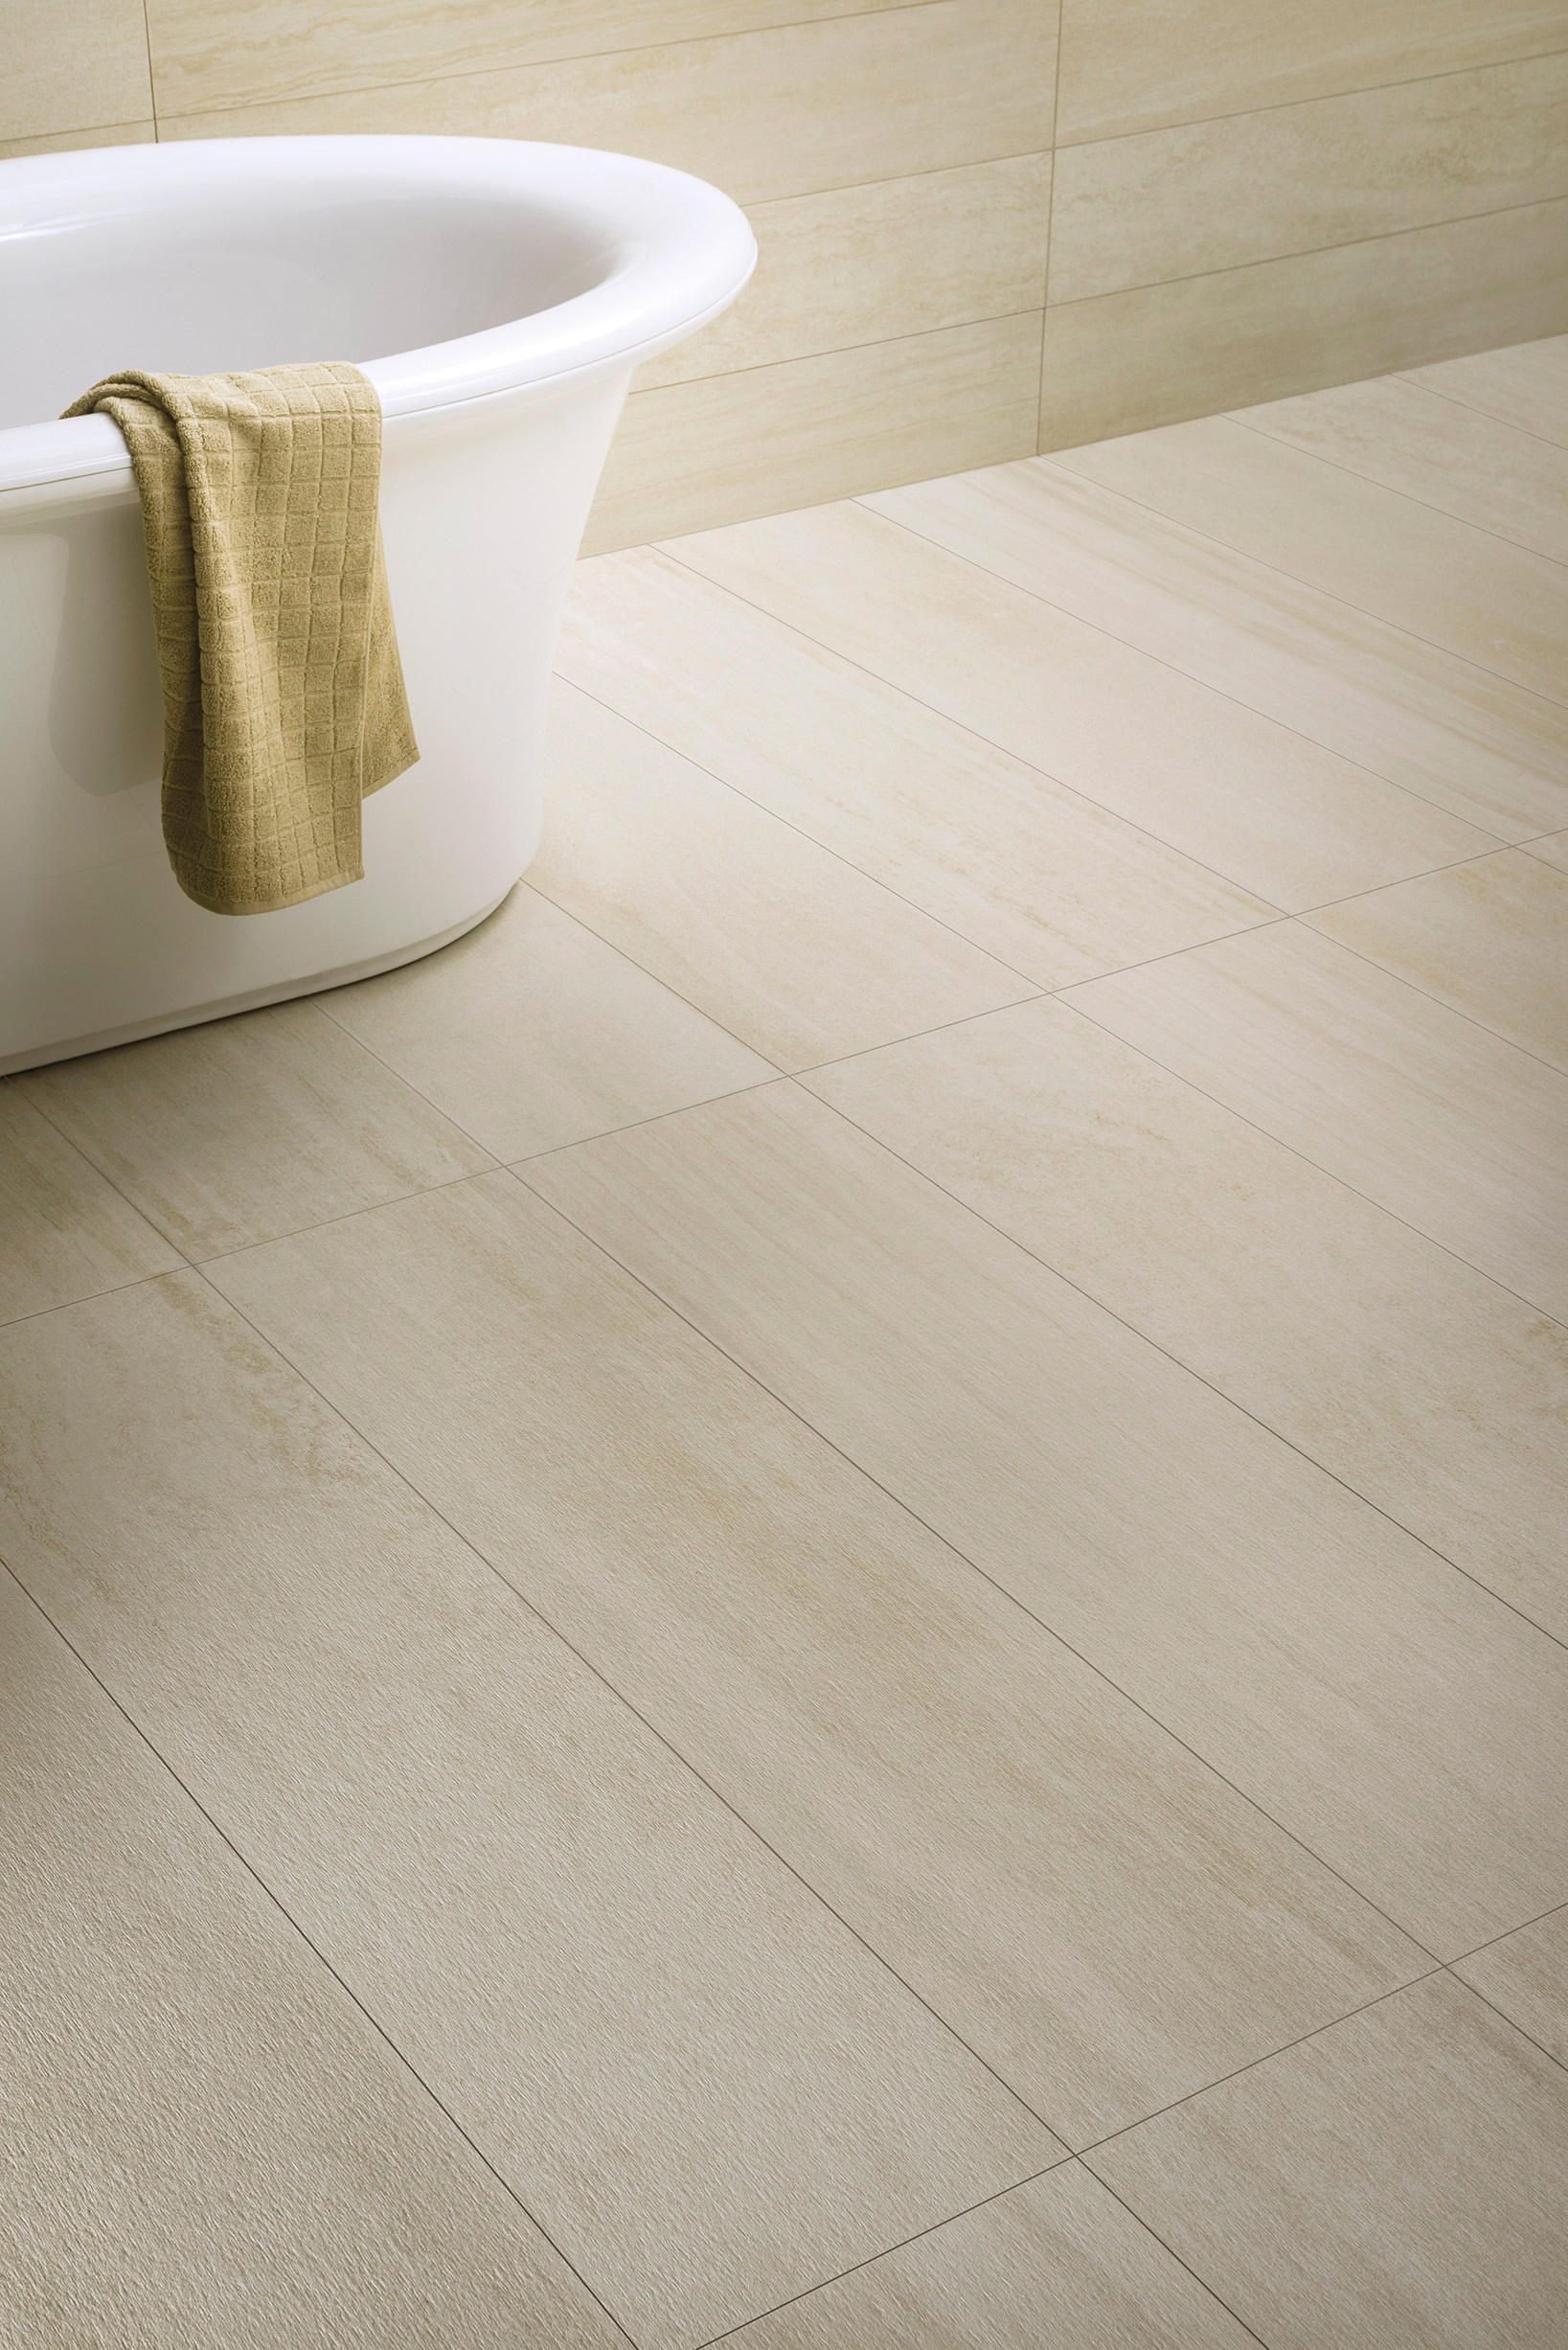 Caesar ceramic floor tiles tile designs verse sugar tiles from caesar architonic ppazfo